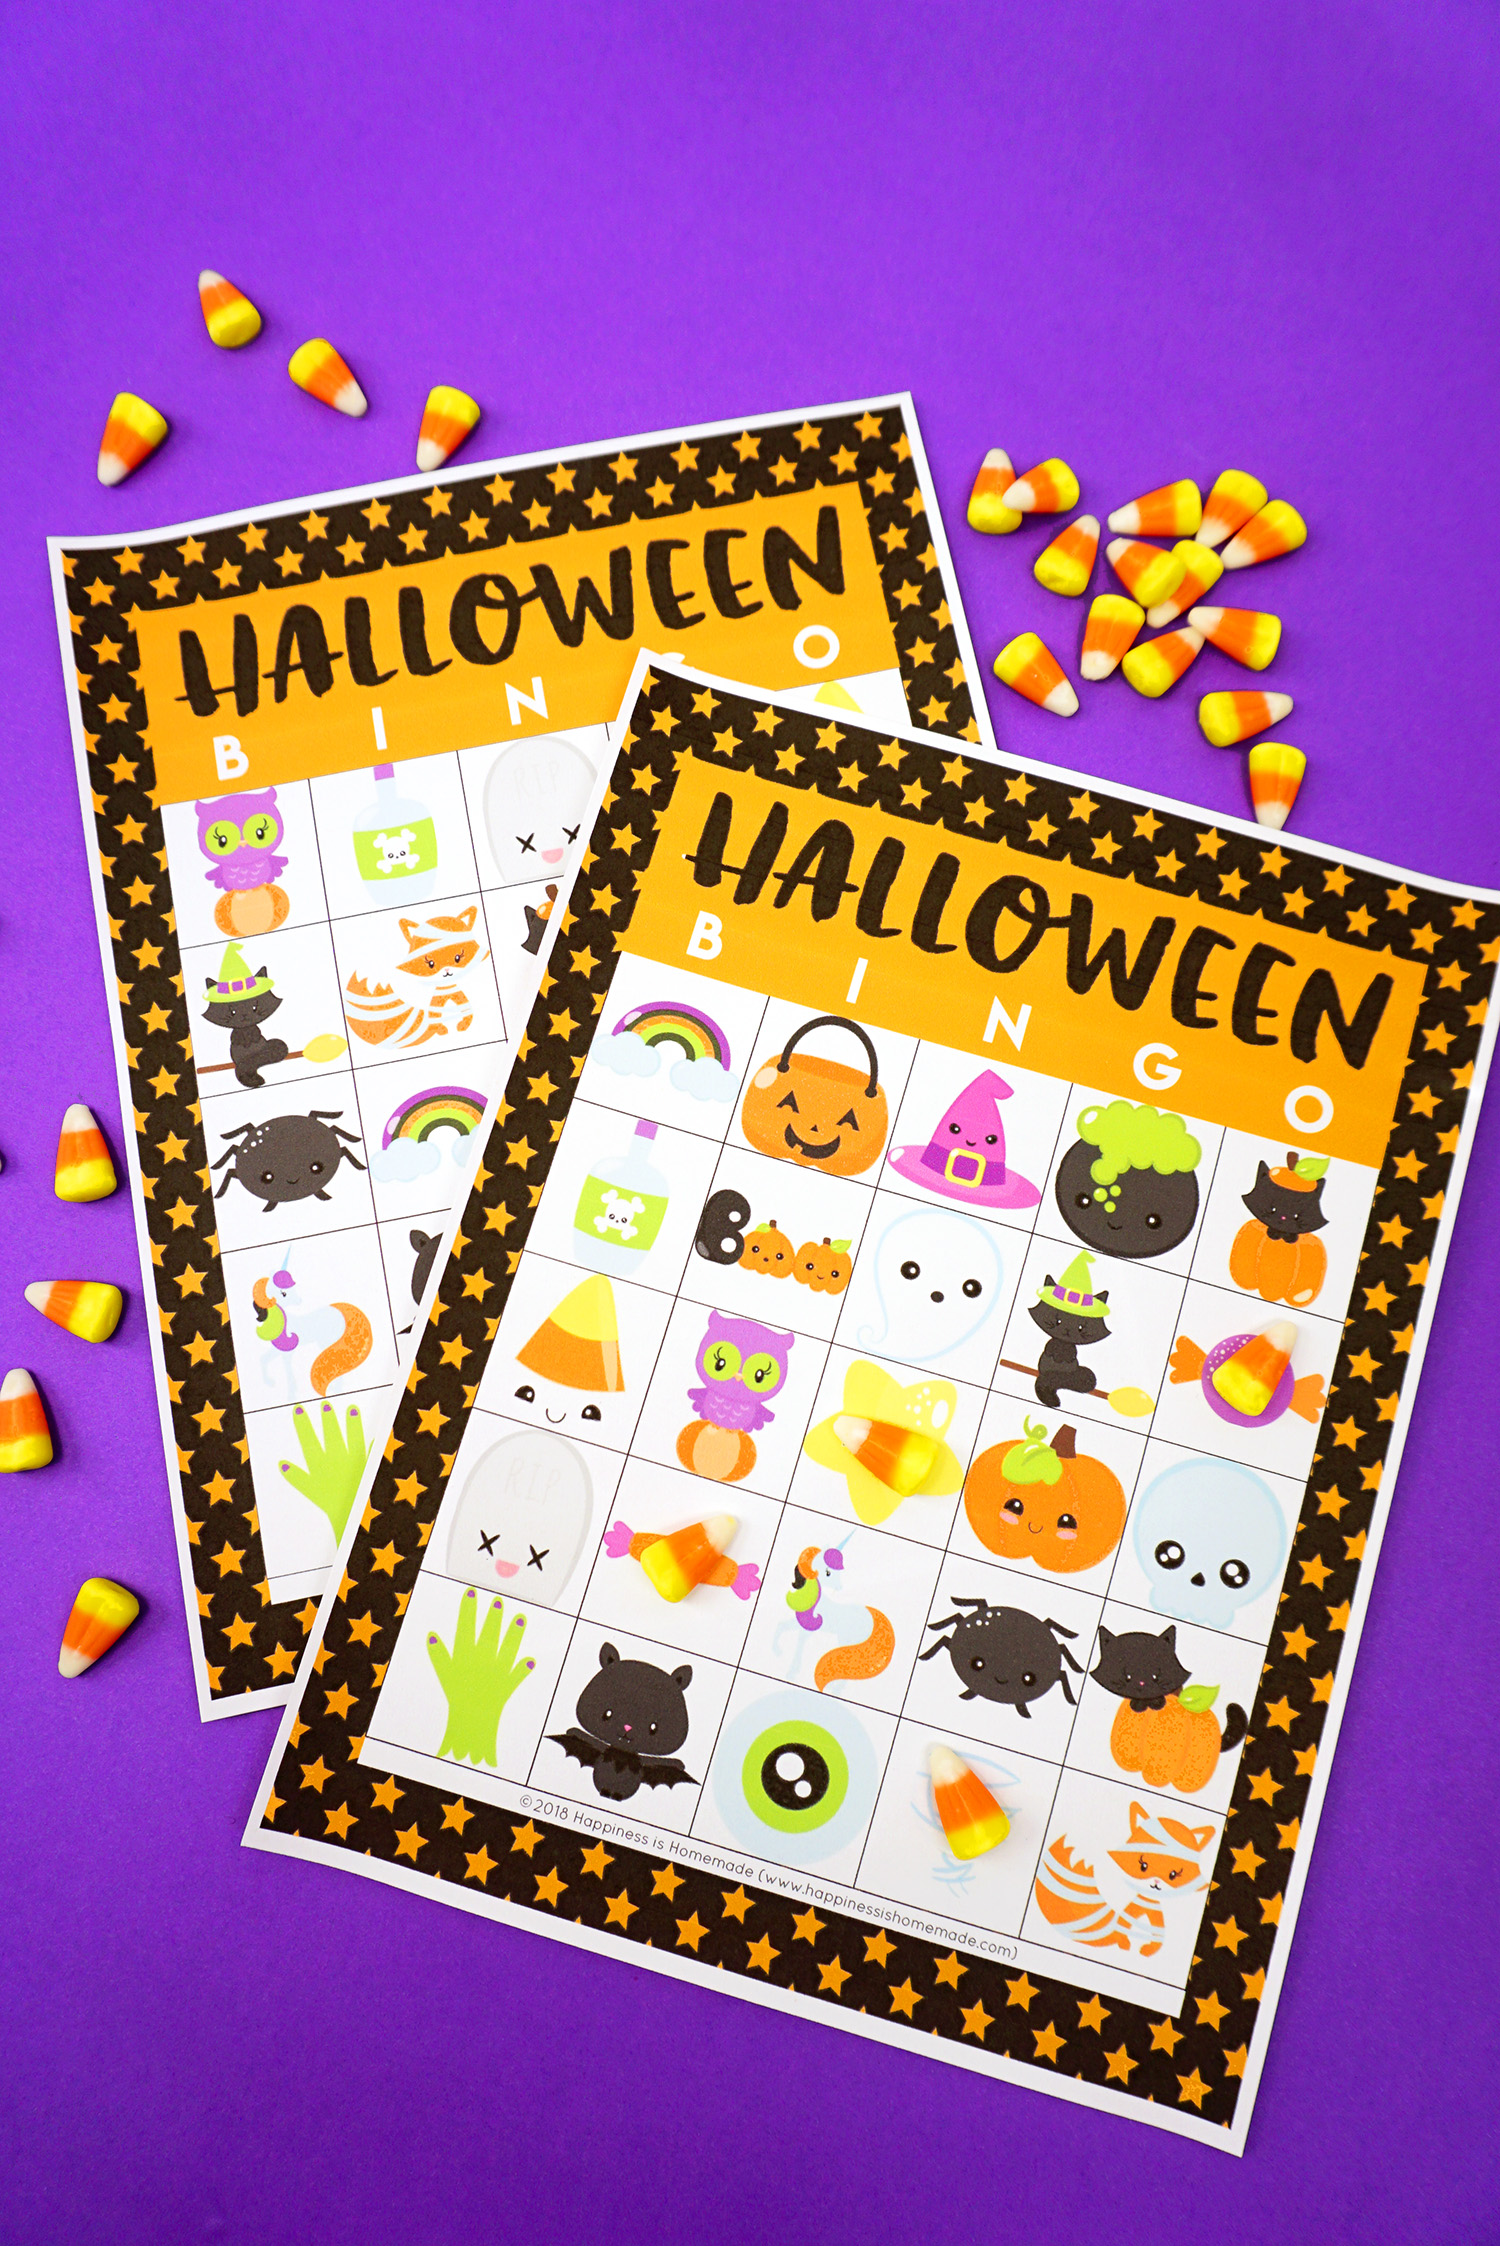 photograph relating to Printable Halloween Bingo Cards called Printable Halloween Bingo Playing cards - Pleasure is Home made